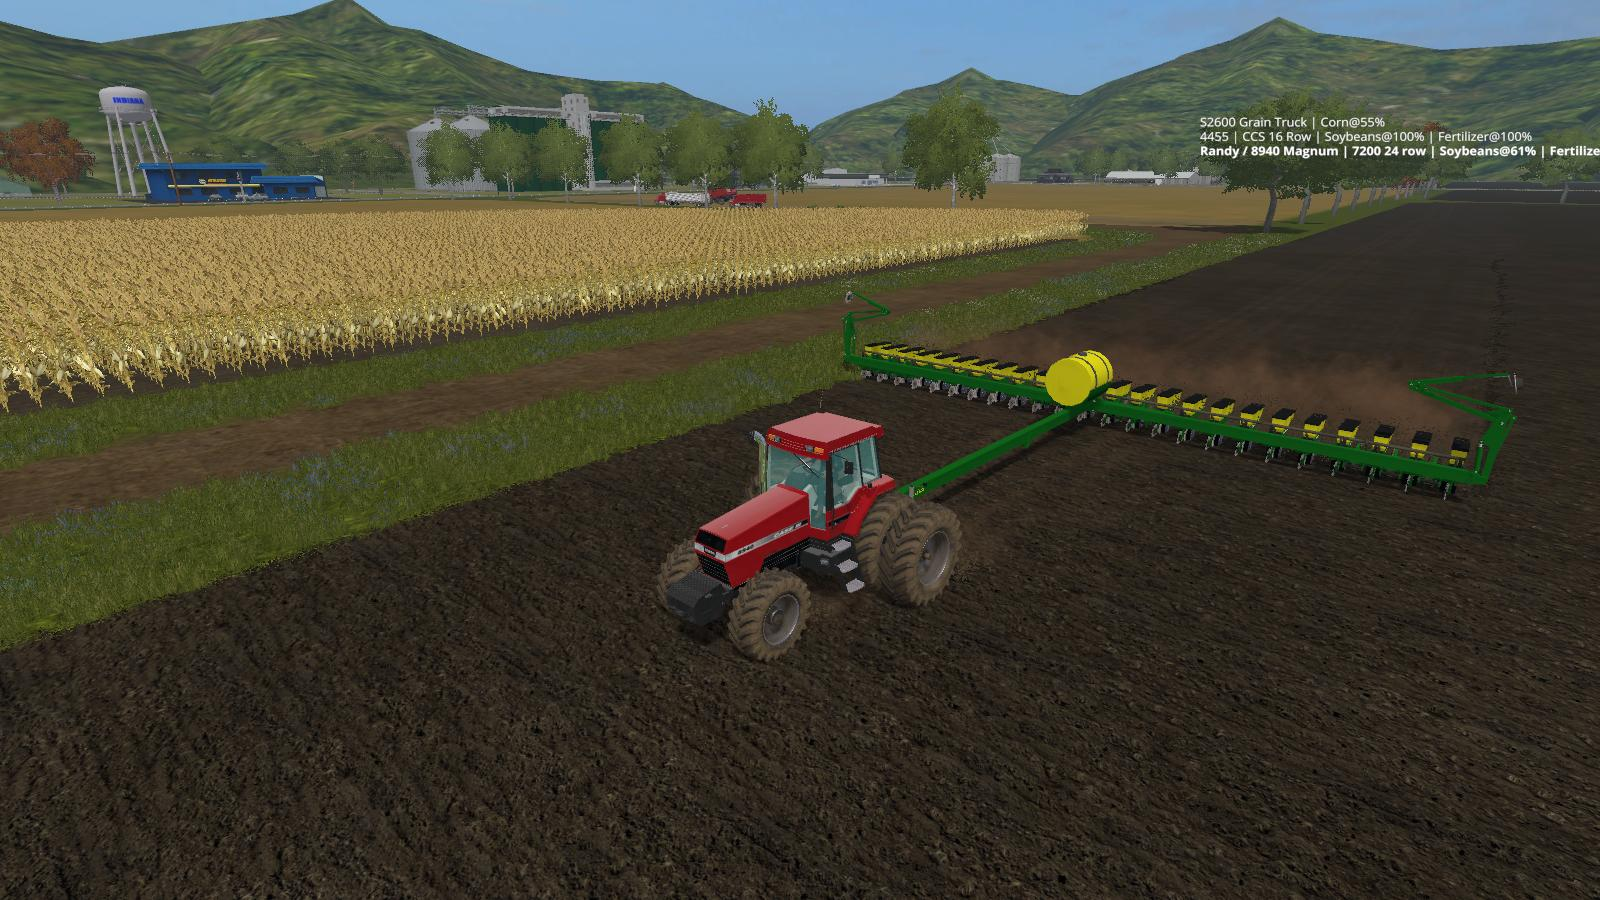 John Deere 7200 24 Row Planter V1 0 0 1 Ls17 Farming Simulator 17